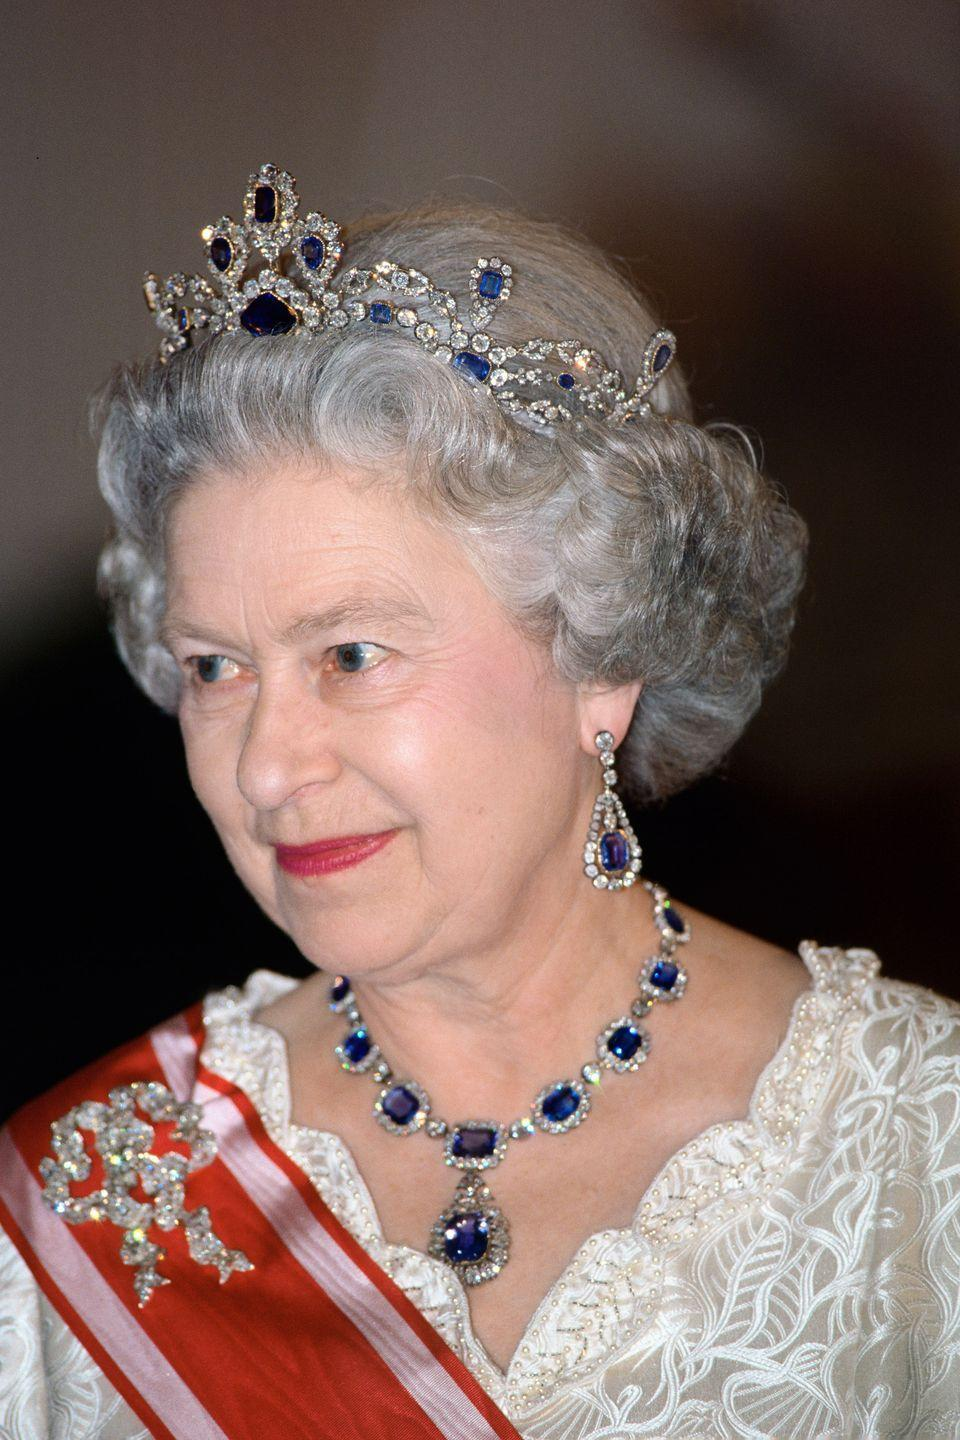 <p>The Queen's sapphire and diamond earrings and necklace were a wedding gift from her father, George VI, and date back to the Victorian era. The tiara is also from the same era and was purchased in 1963 to coordinate with the necklace and earrings. Its name comes from its original owner, Princess Louise of Belgium.</p>